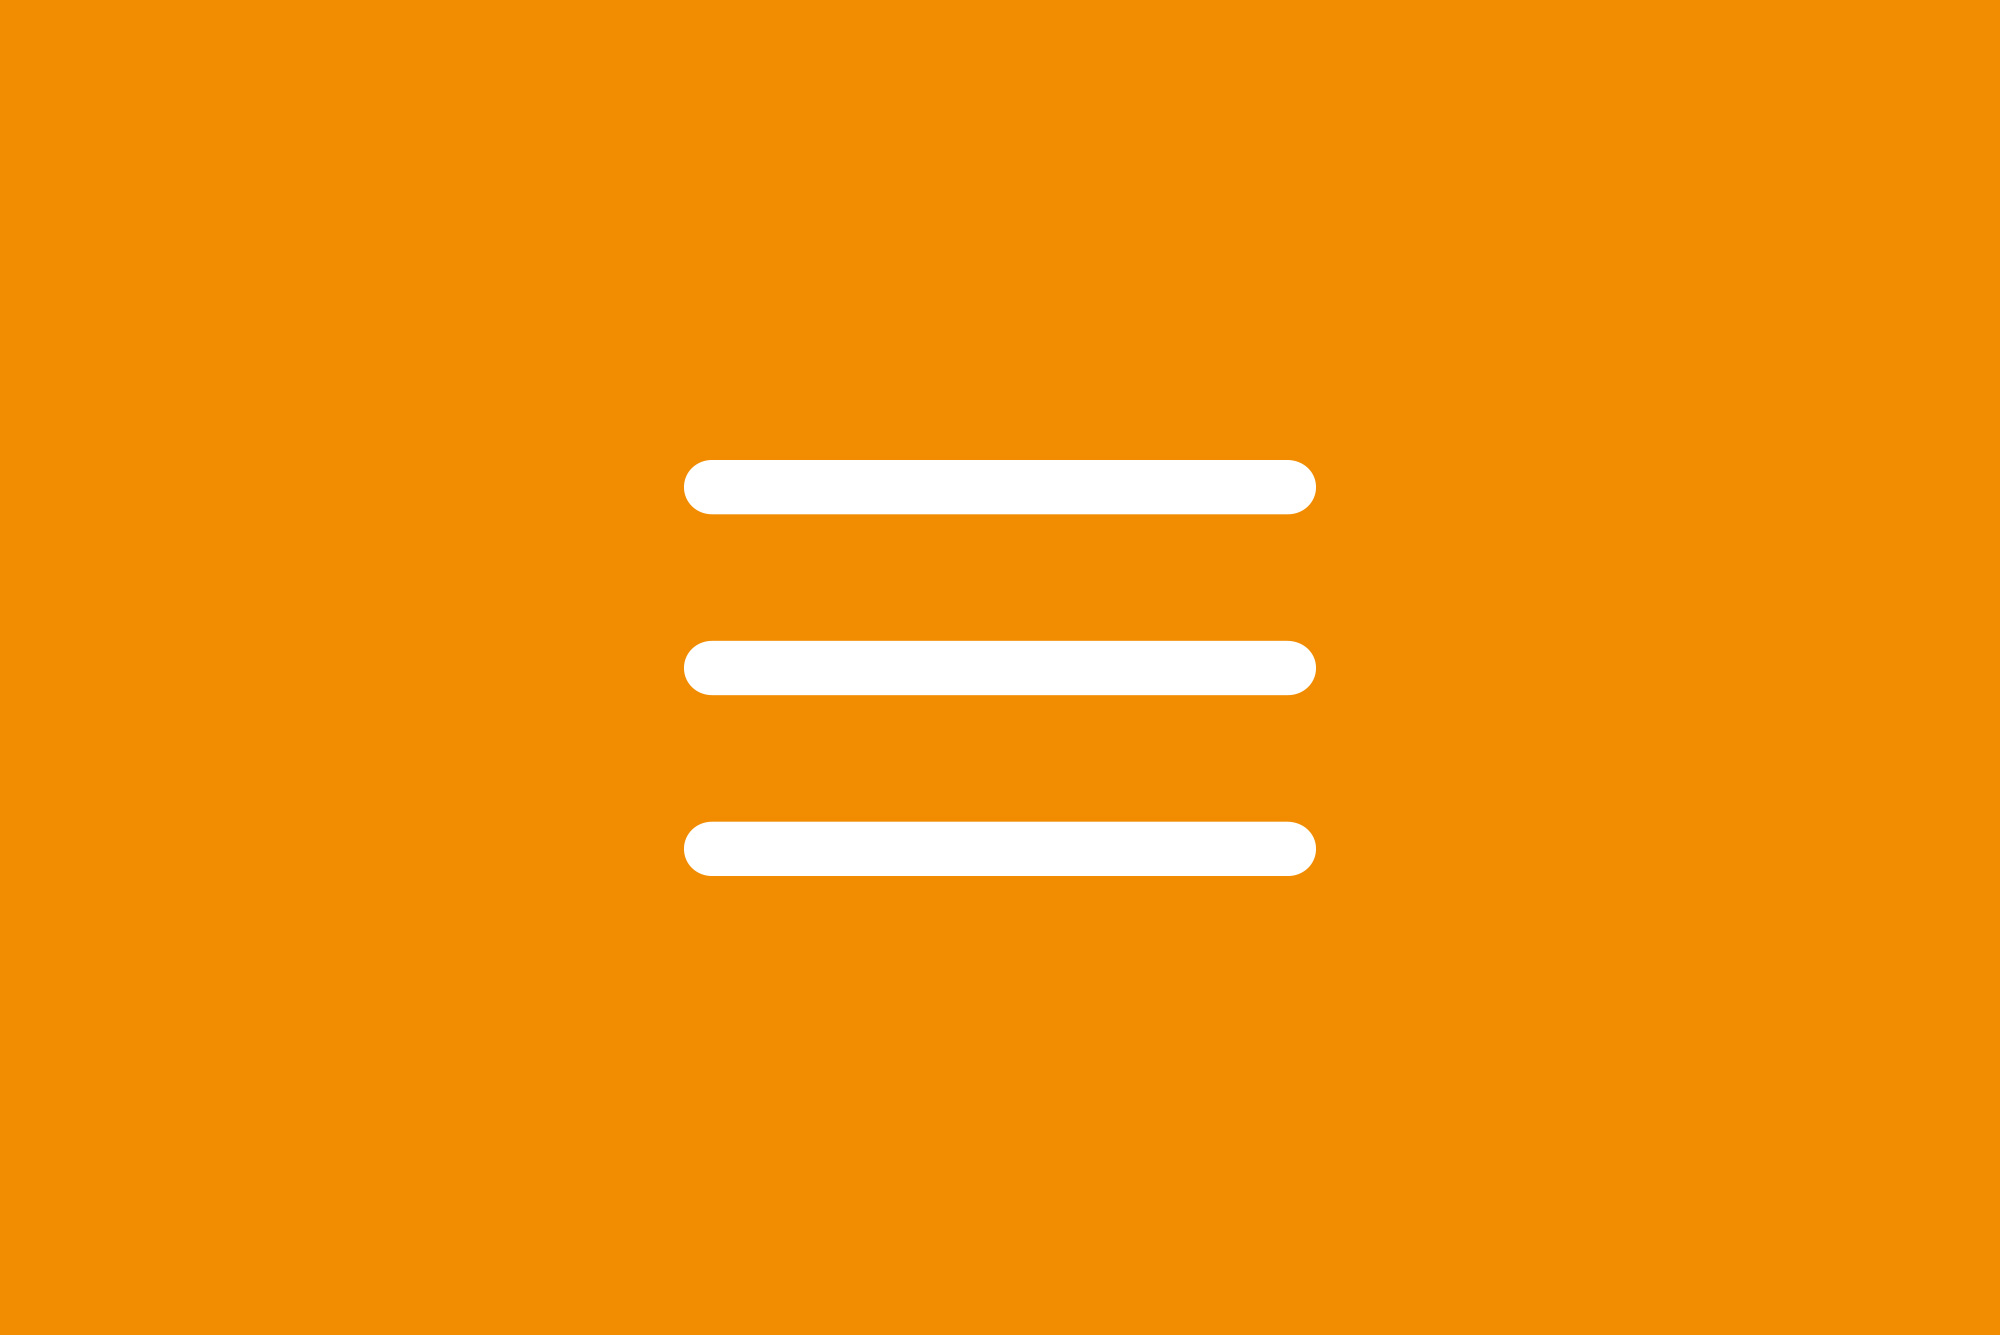 Hamburger icon on orange background